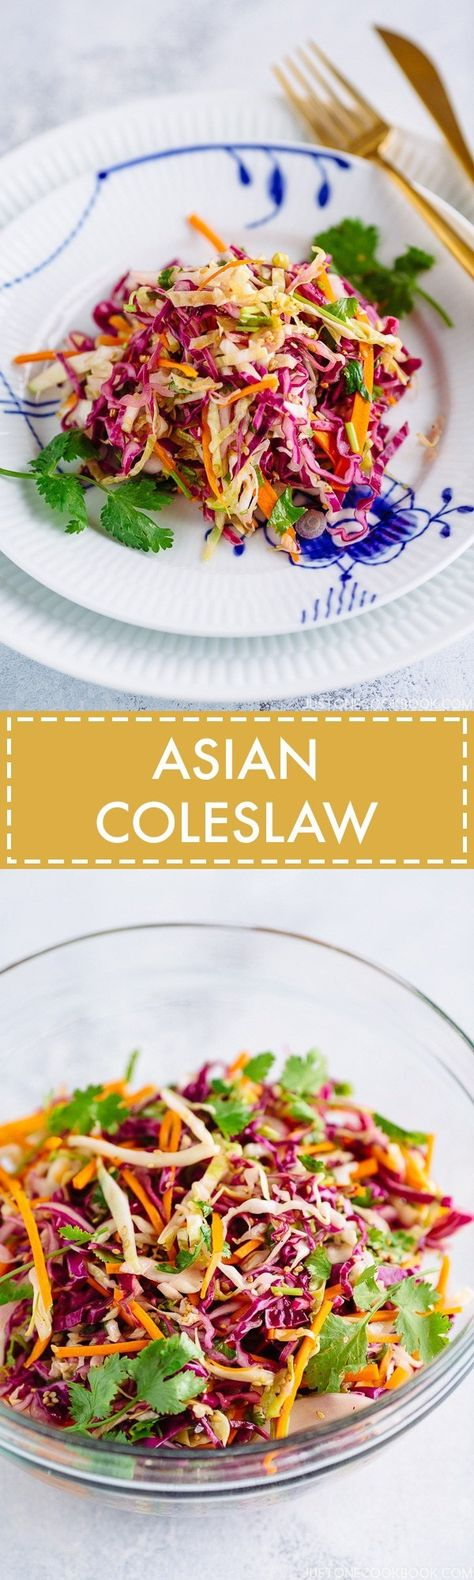 Asian Coleslaw アジア風コールスロー - Refreshing and colorful Asian-style coleslaw recipe. A perfect salad to complement Ahi tuna steak, BBQ meats, and other Asian themed dinner menus. #coleslaw #salad #asiansalad #コールスロー   Easy Japanese Recipes at JustOneCookbook.com